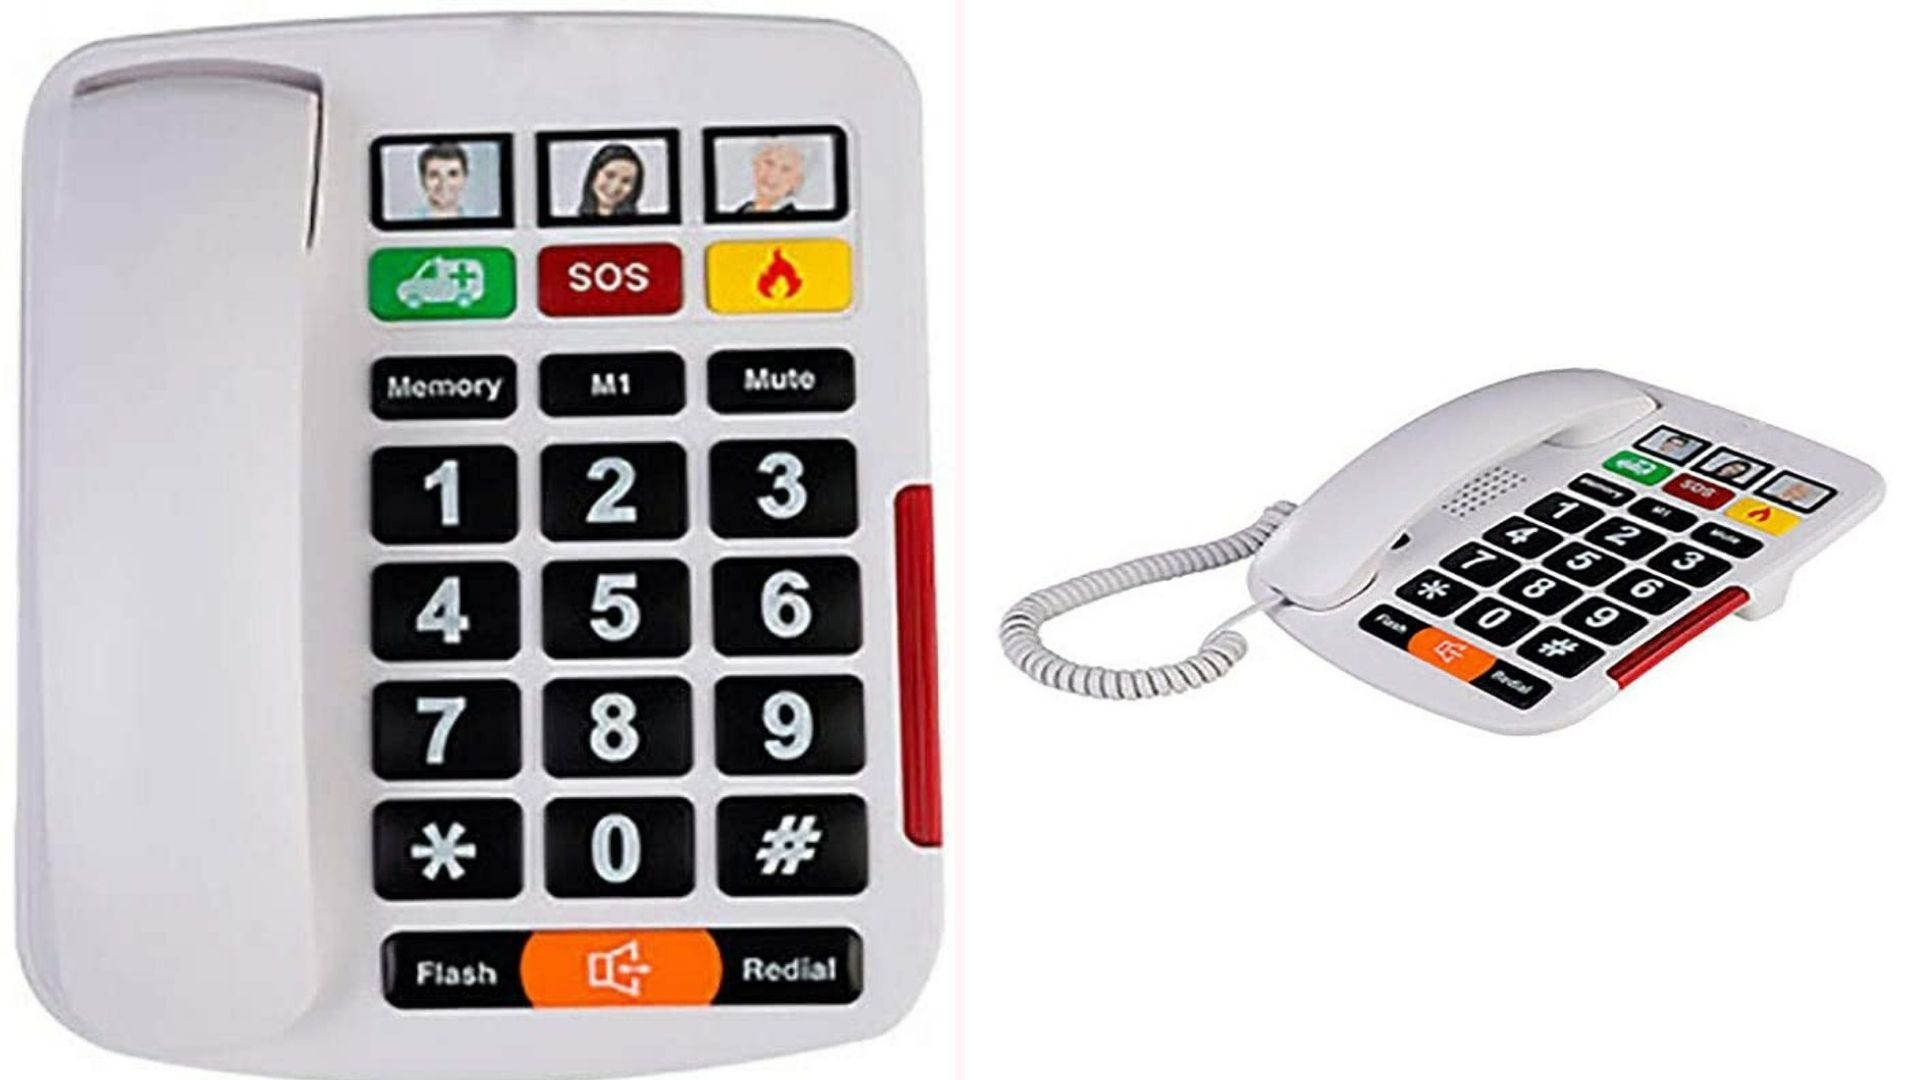 a white corded phone with large buttons and emergency call buttons